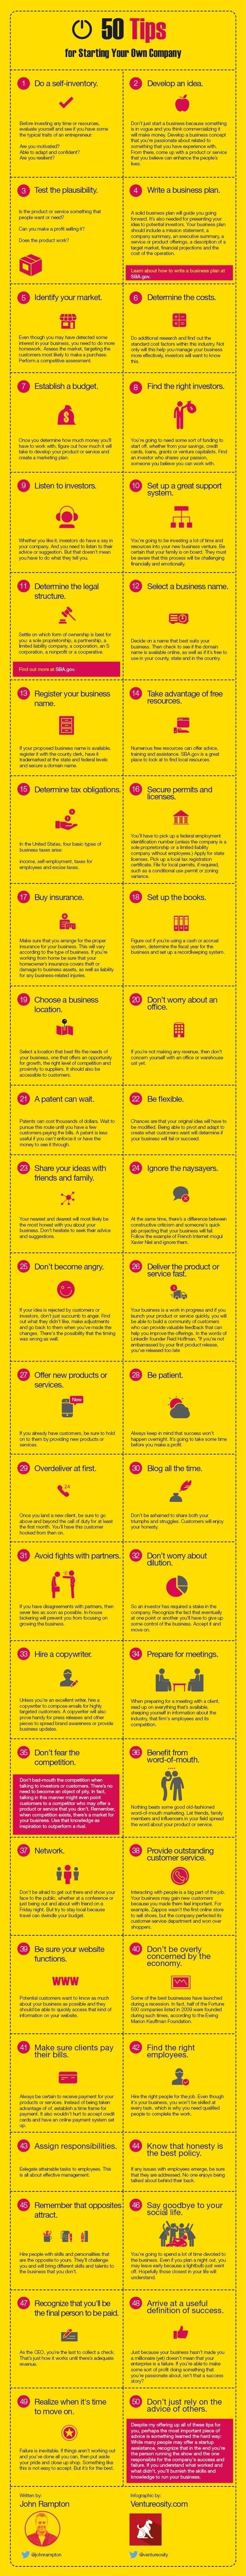 How to Start Your Own Company: 50 tips (infographic)